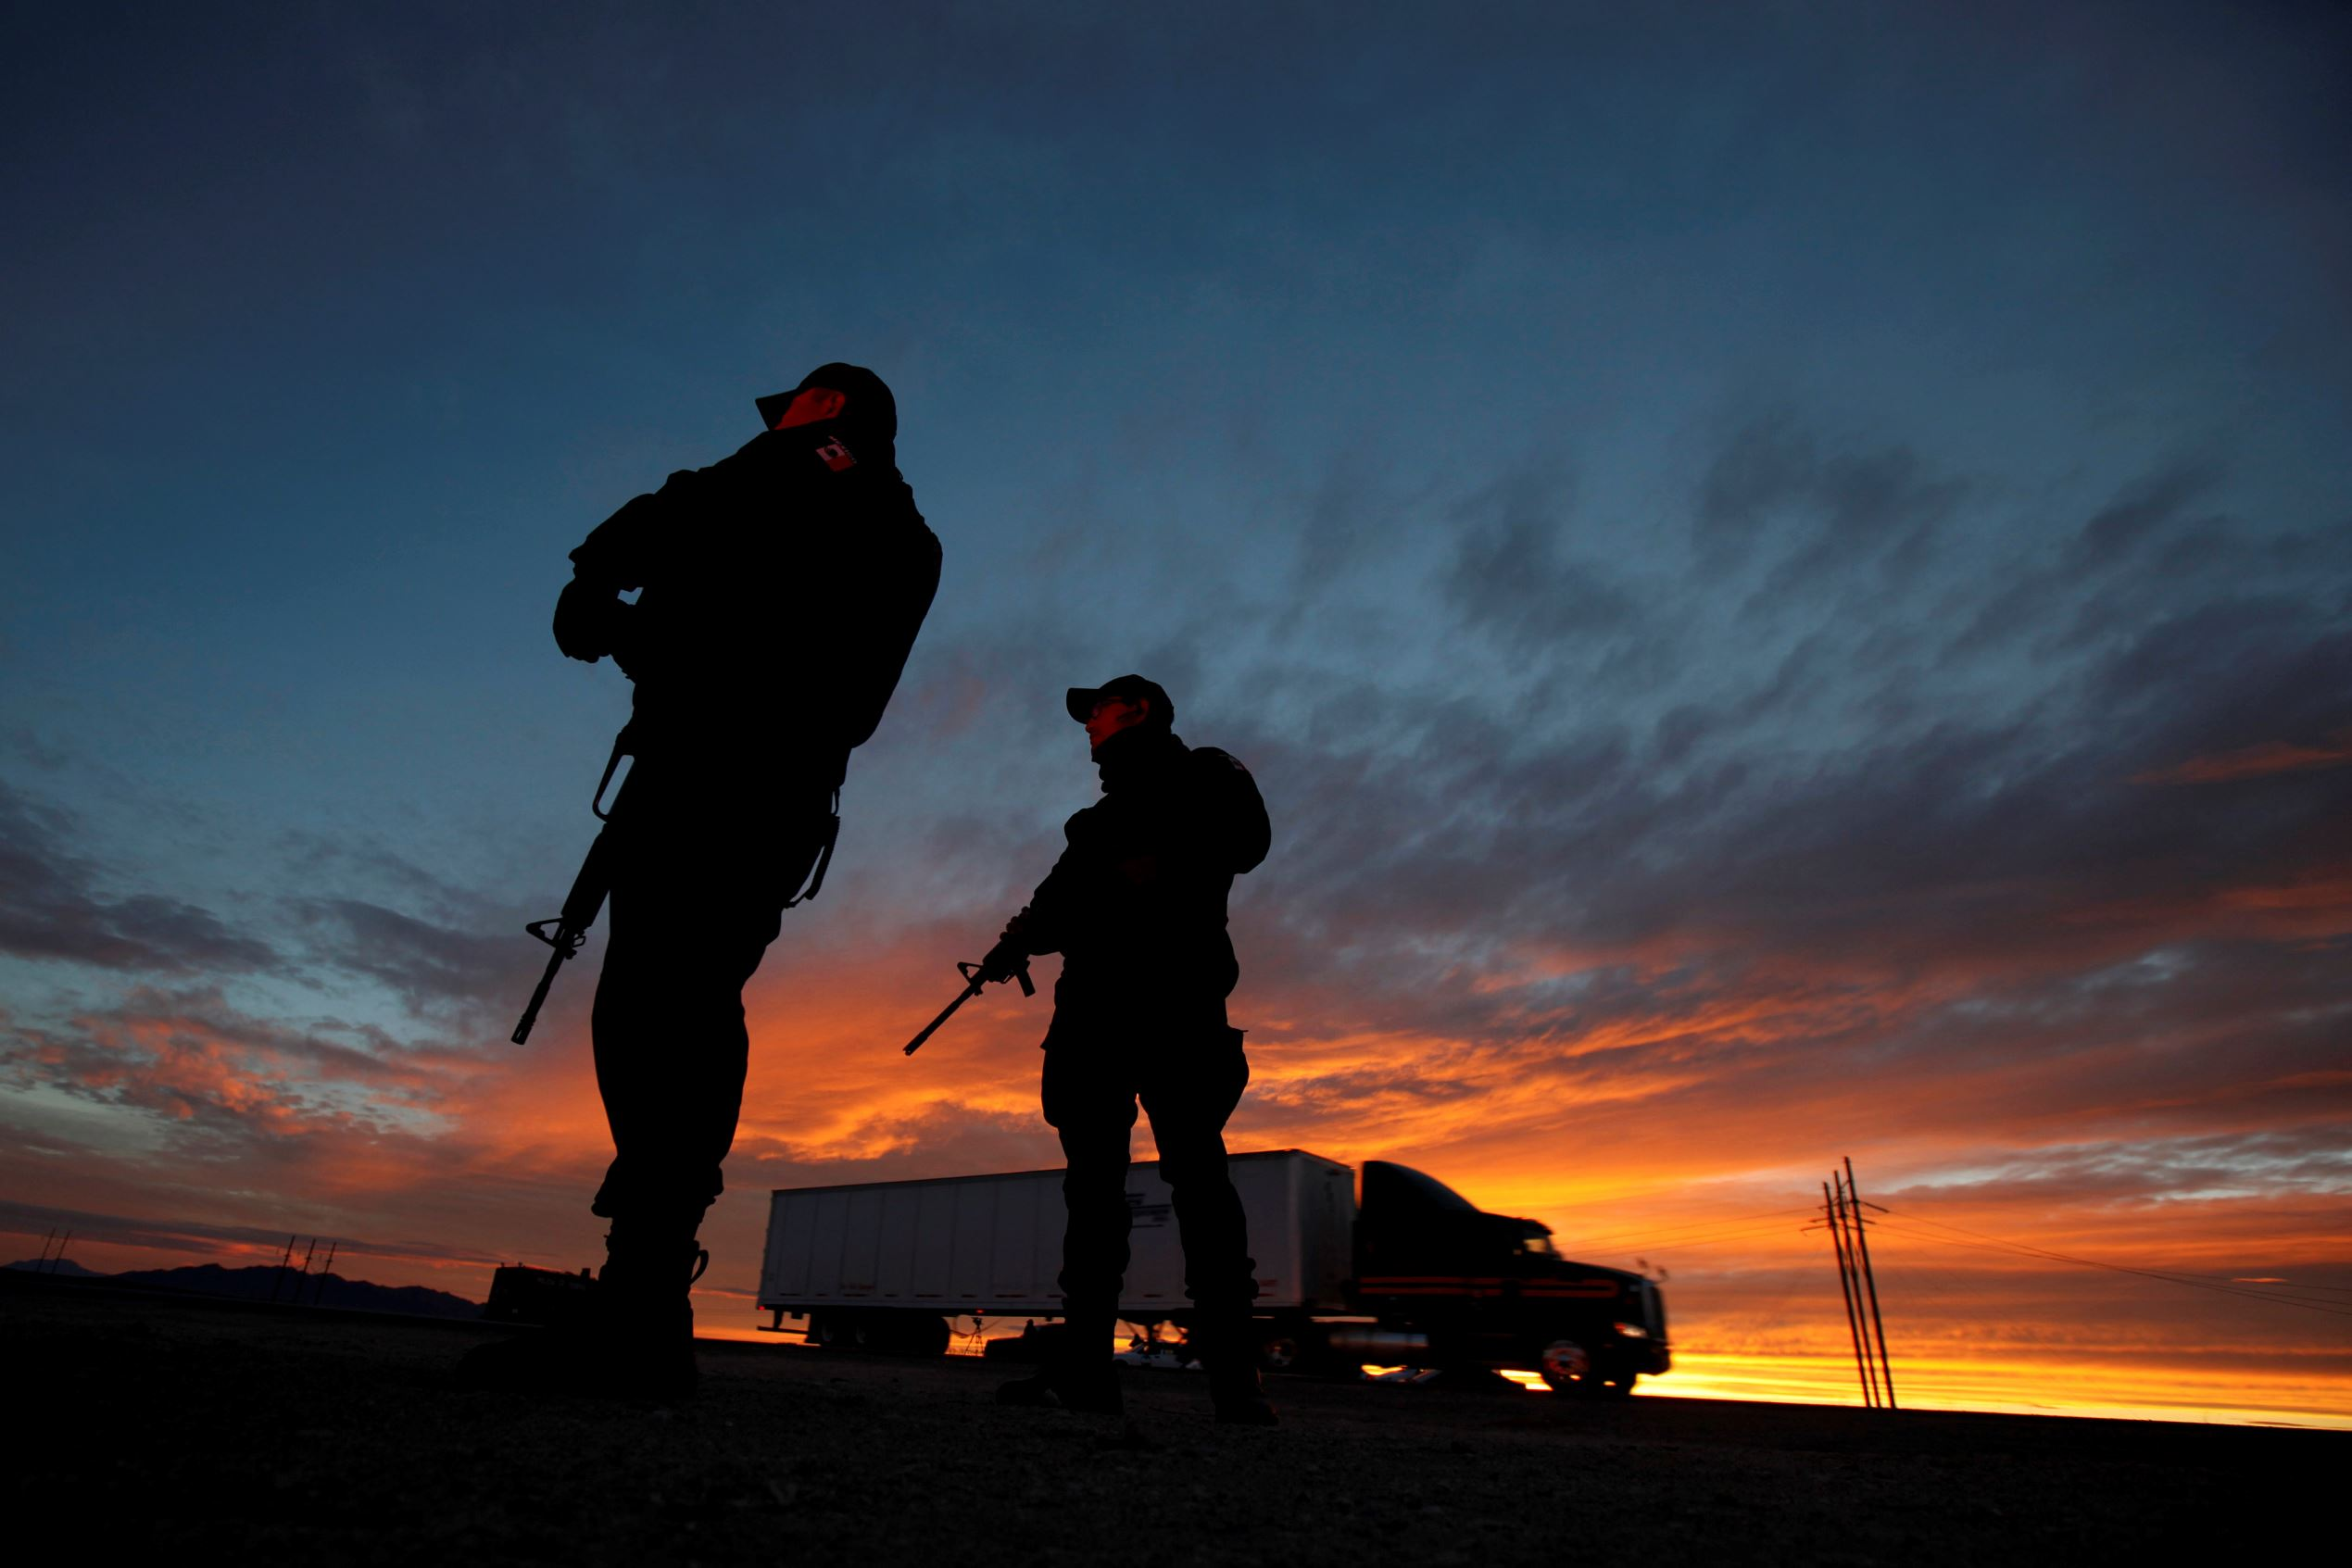 """Federal police officers stand guard near the jail where Mexican drug lord Joaquin """"El Chapo"""" Guzman was imprisoned before being extradited to the United States on Thursday, in Ciudad Juarez, Mexico January 19, 2017."""